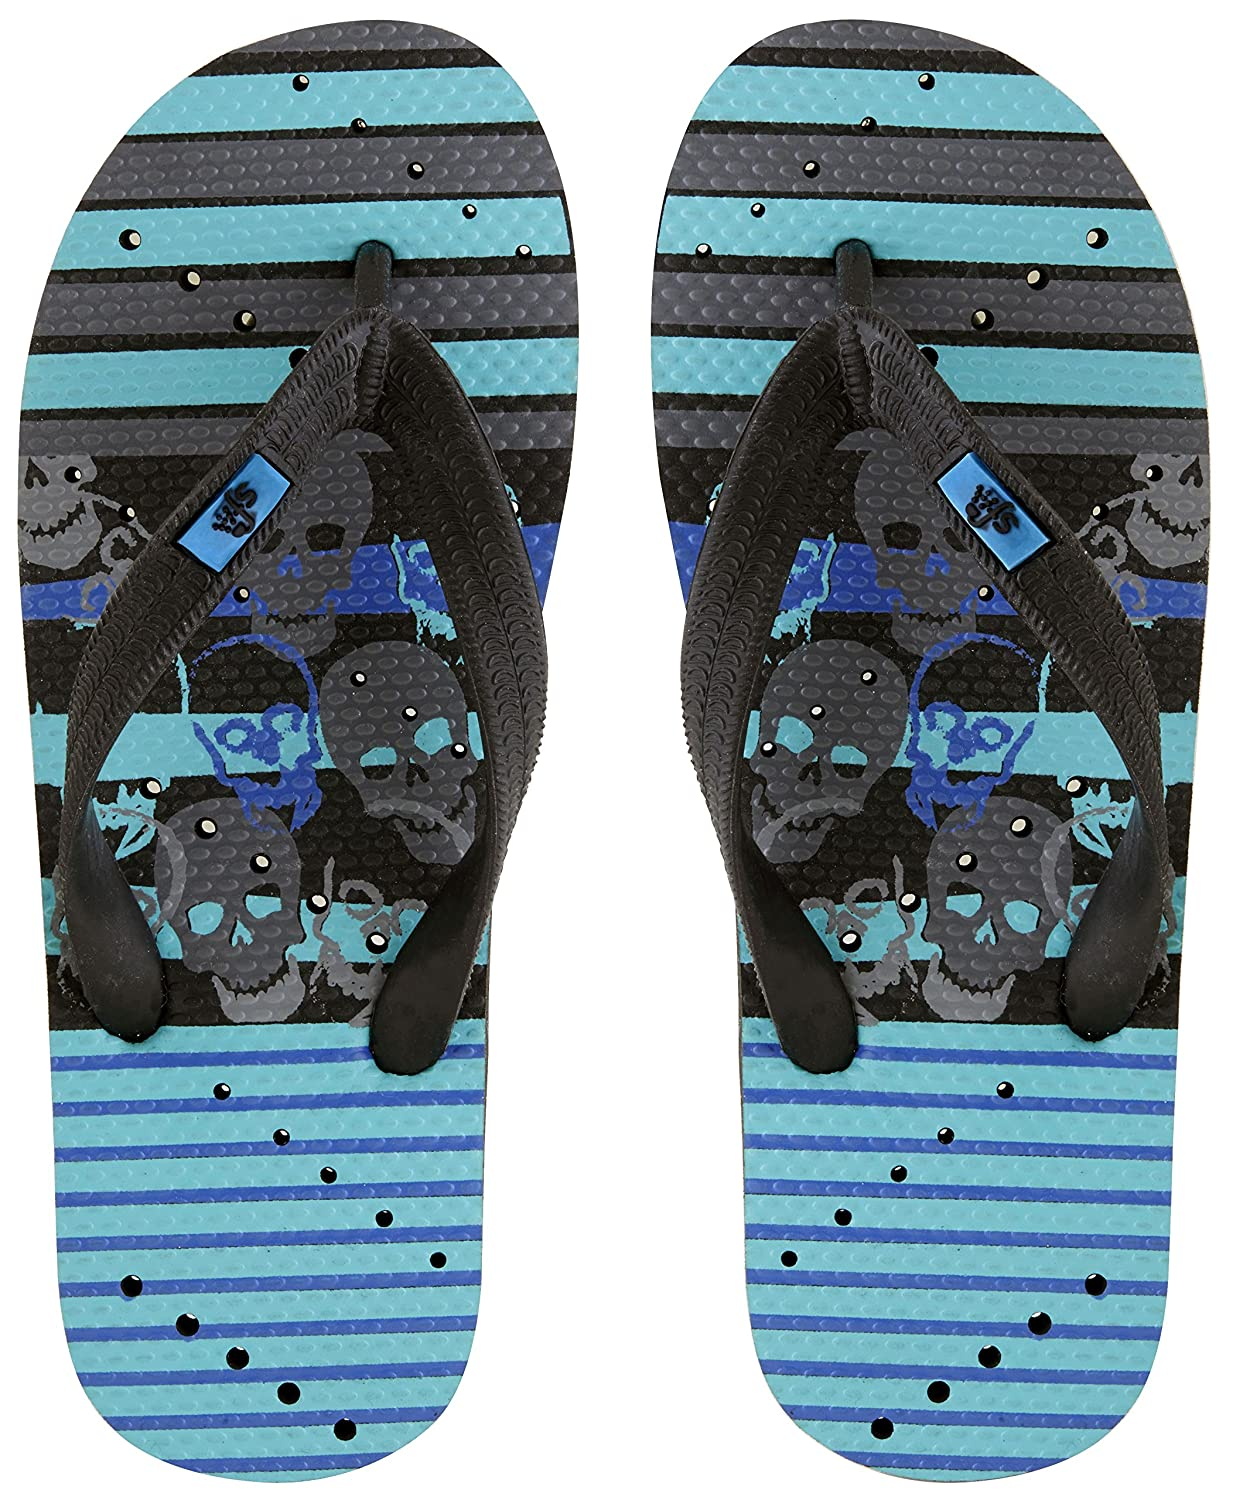 Showaflops Boys' Antimicrobial Shower & Water Sandals for Pool, Beach, Camp and Gym - Road Warrior Group